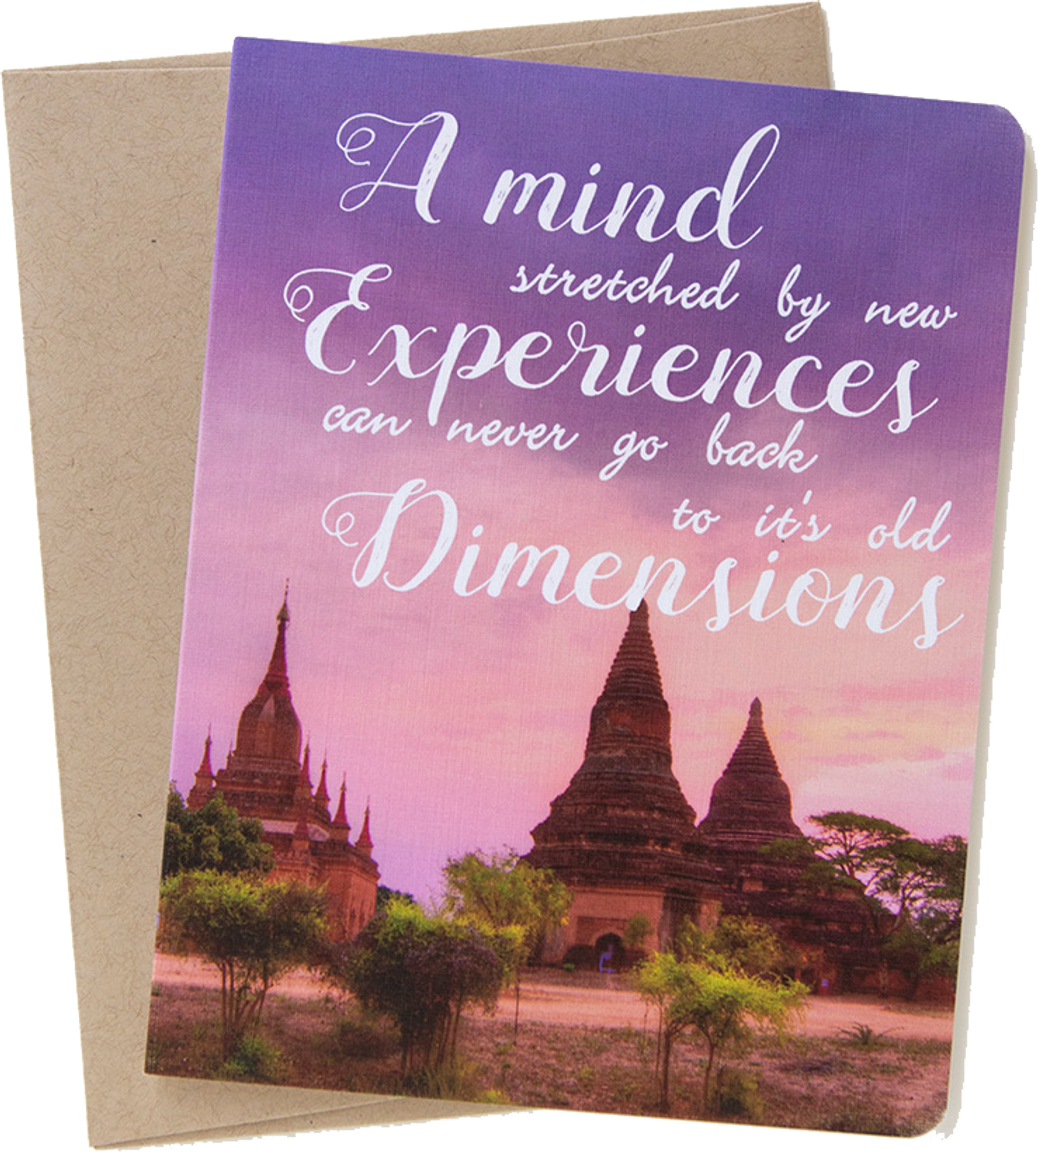 """Travel card with an image from Bagan, Mayanmar by photographer Shelley Coar and quote """"A mind stretched by new experiences can never go back to it's old dimensions."""""""